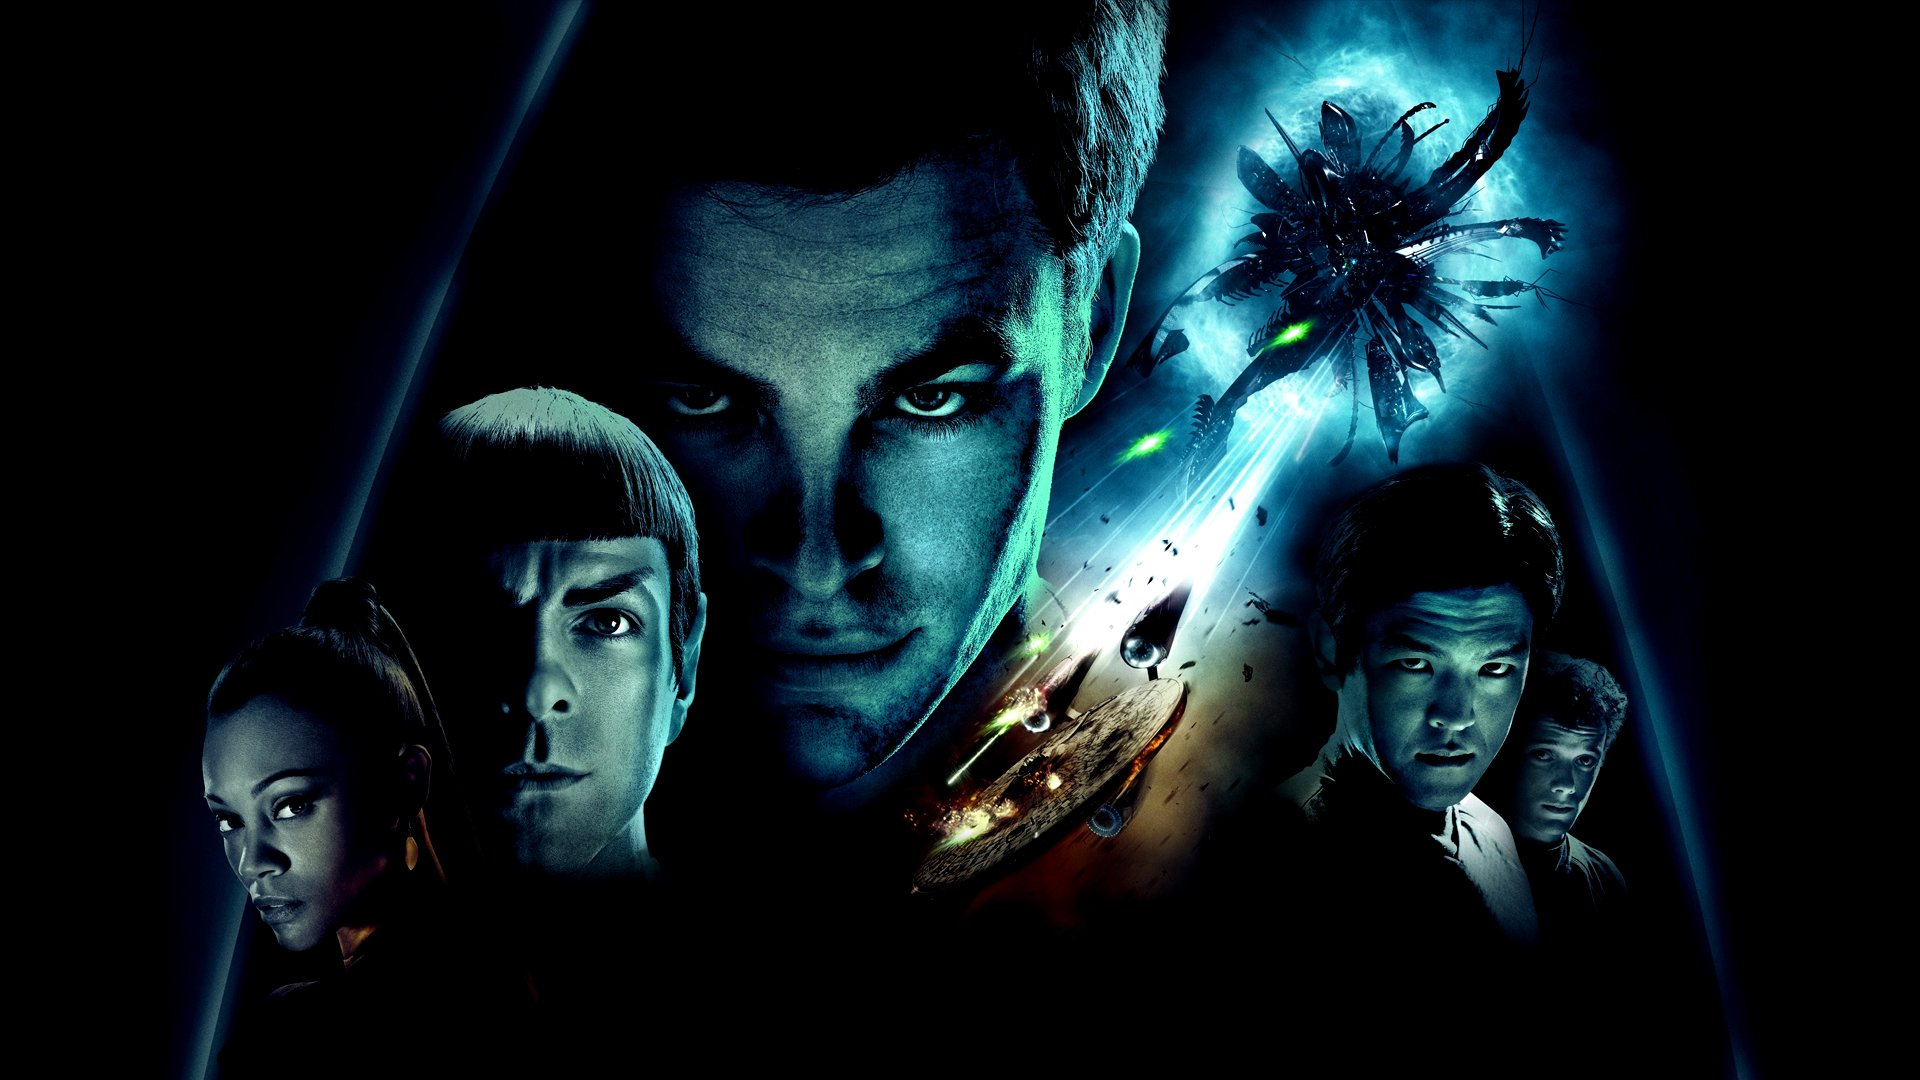 Star Trek 2009 wallpaper 1920x1080   hebusorg   High Definition 1920x1080